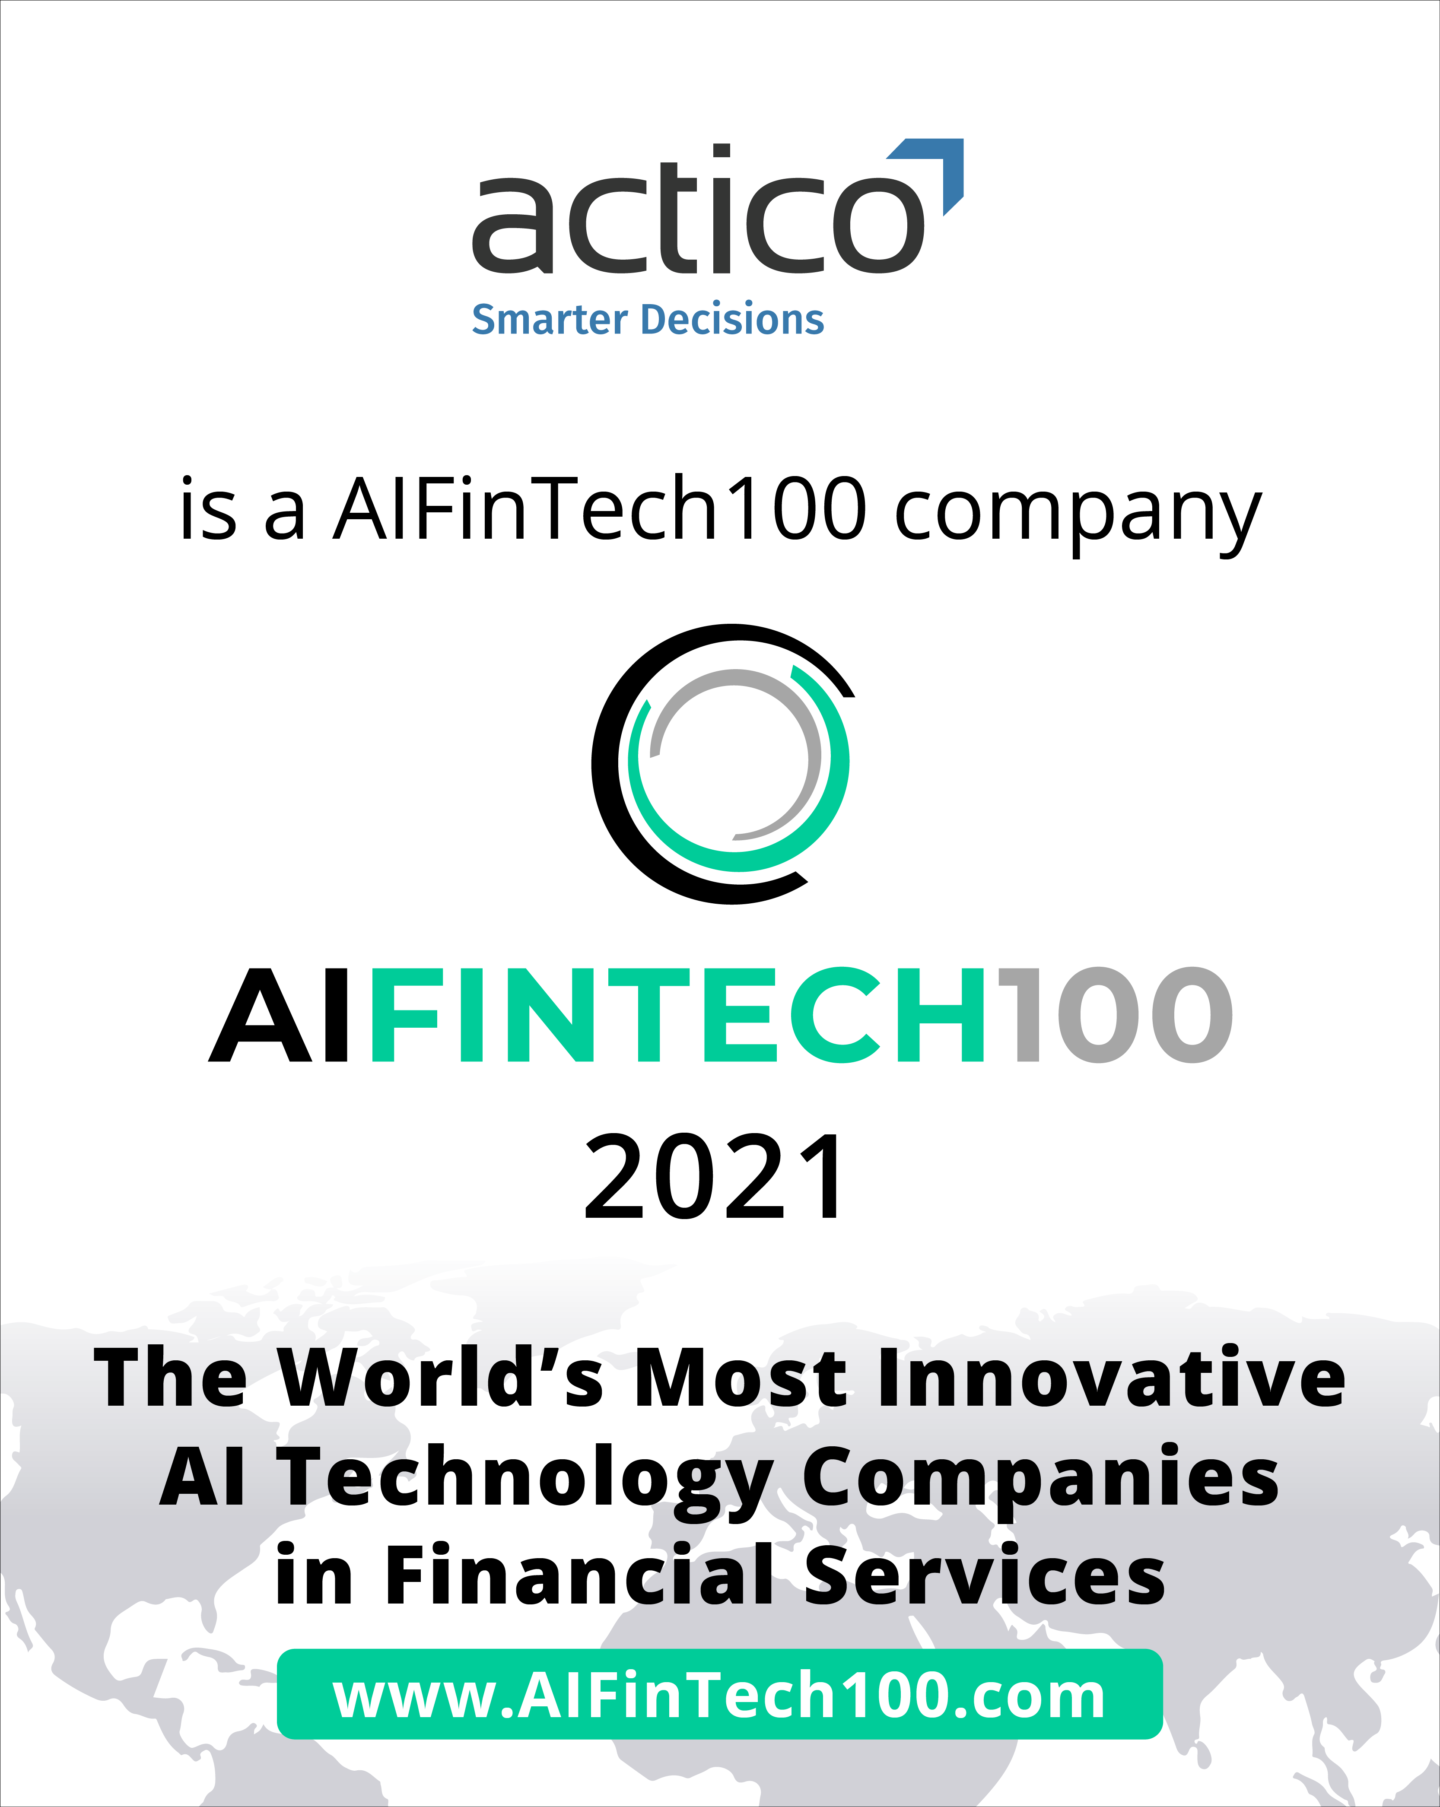 ACTICO makes the Global AIFinTech100